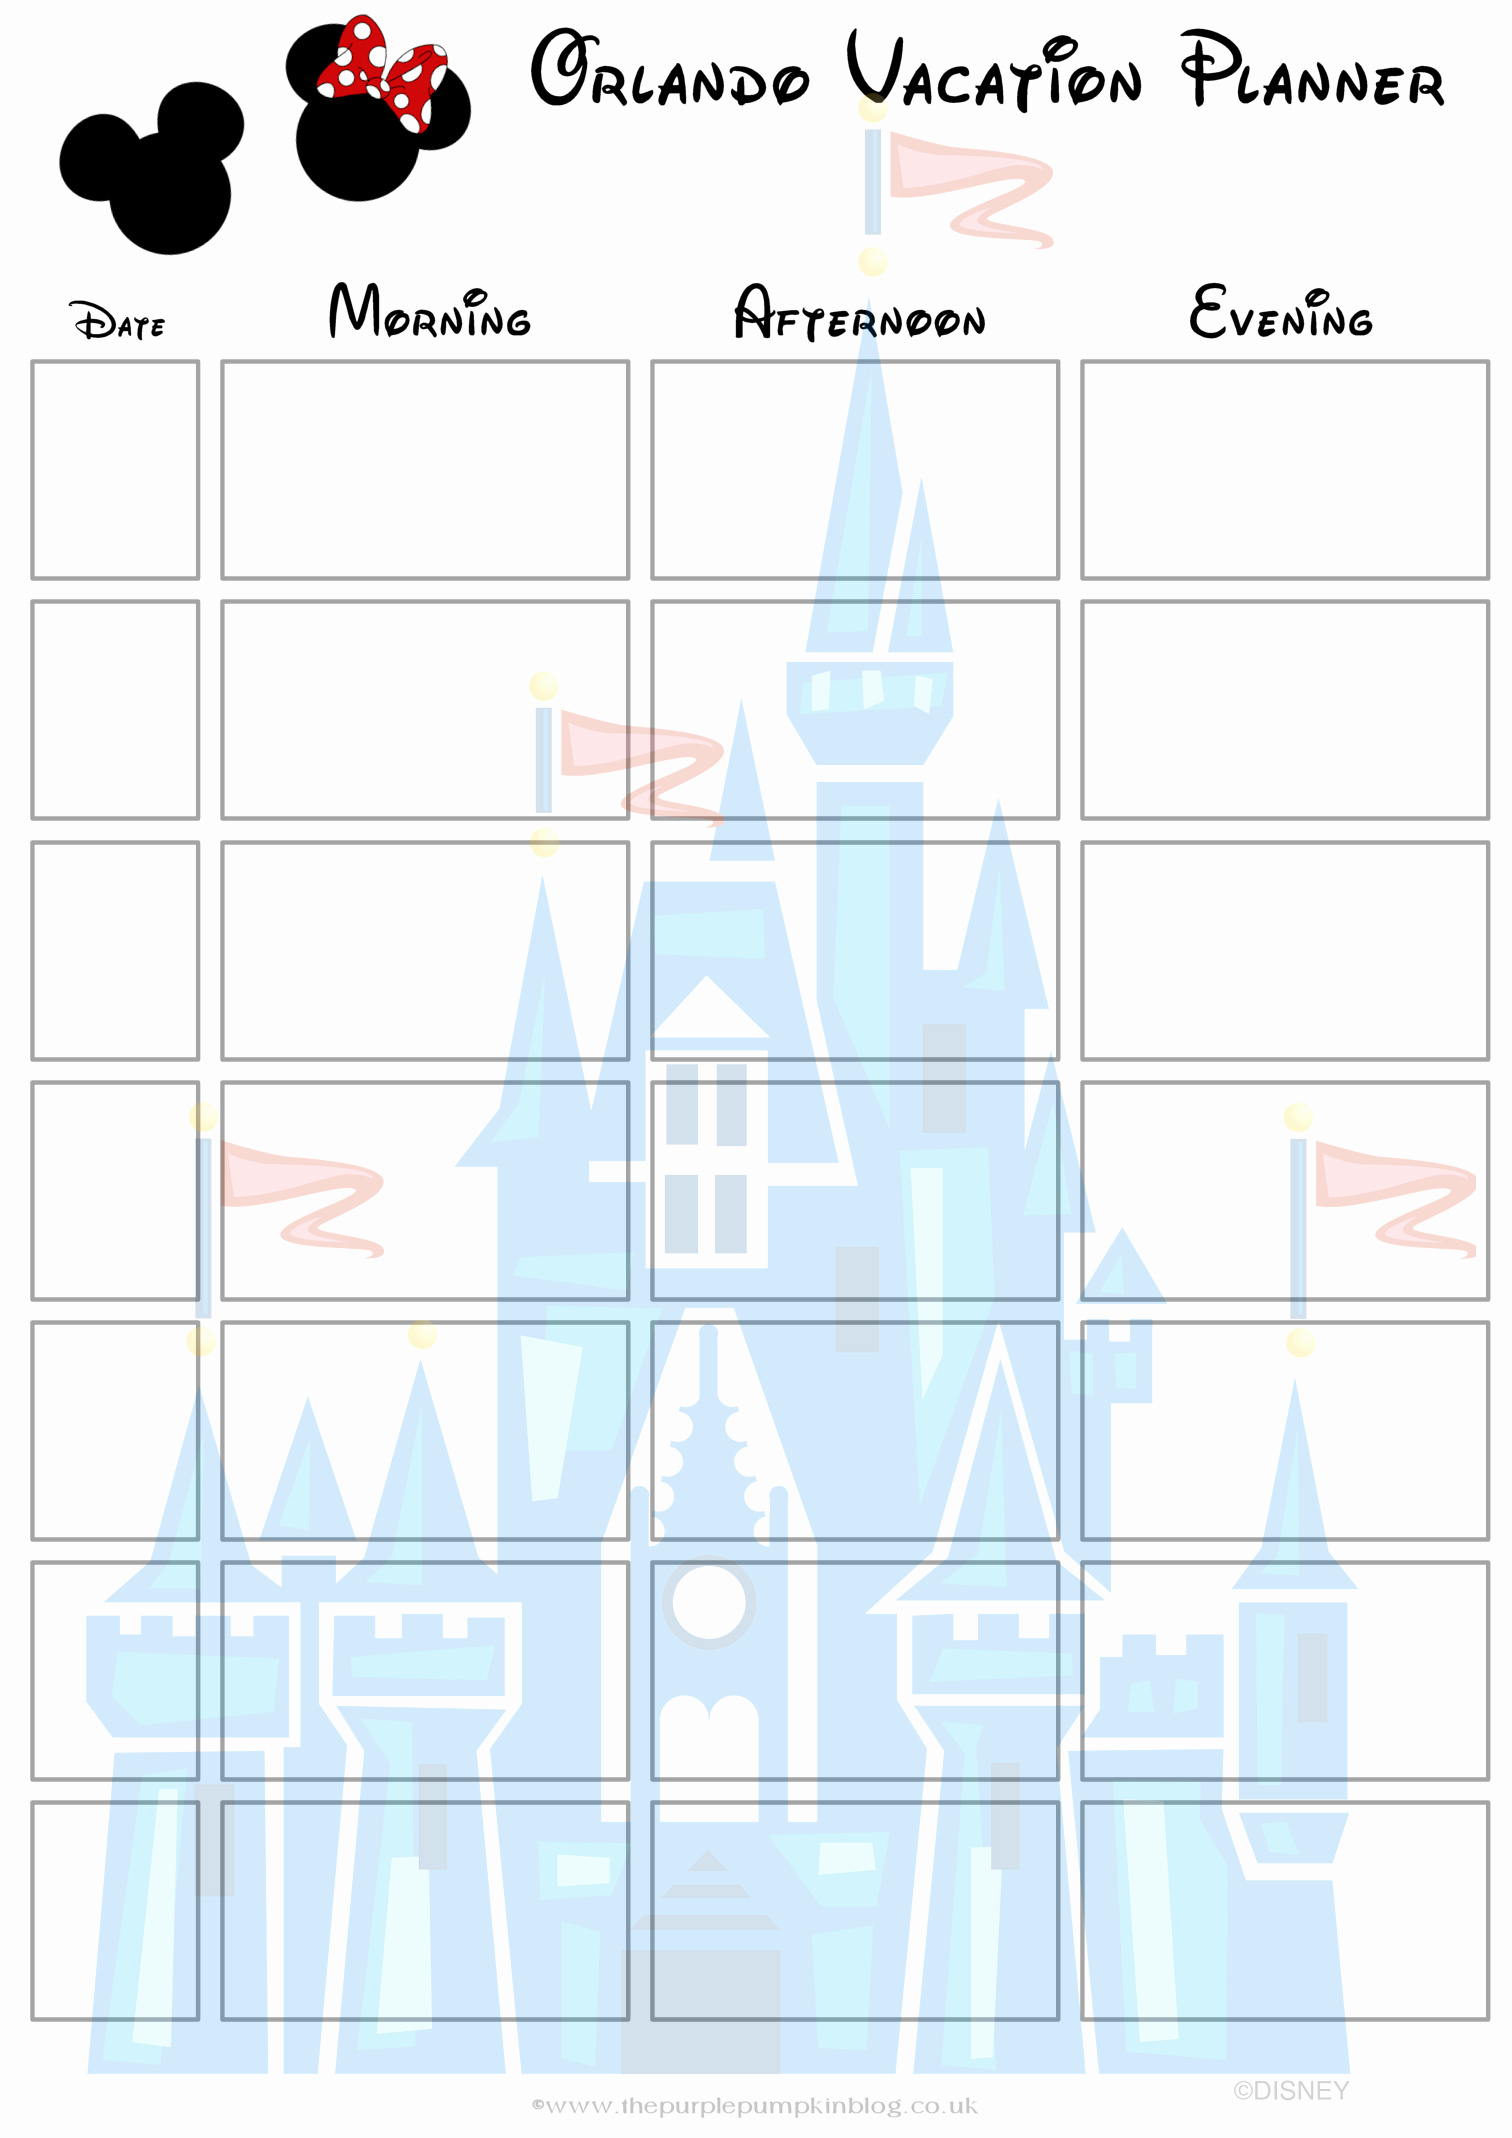 Disney Vacation Planner Template Fresh orlando Walt Disney World Vacation Planner